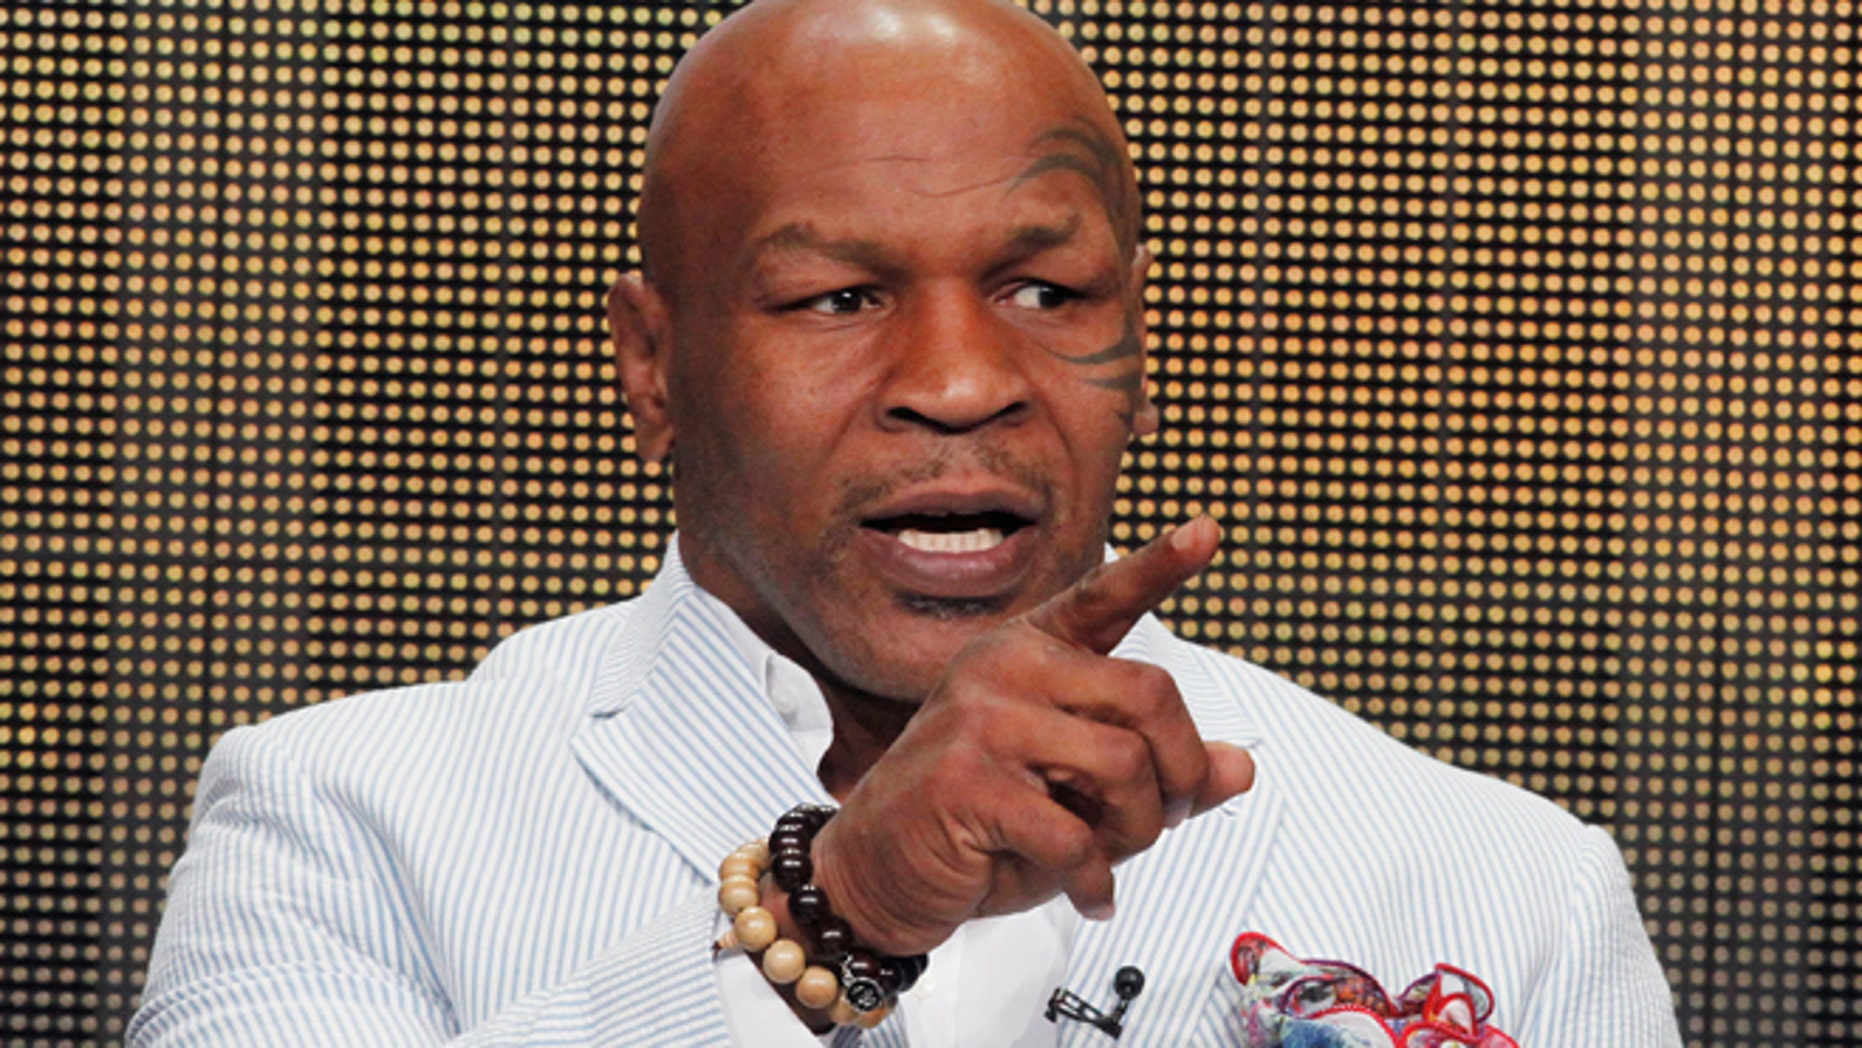 """Mike Tyson, star of HBO Films """"Mike Tyson: Undisputed Truth"""", takes part in a panel discussion at the Television Critics Association Cable TV Summer press tour in Beverly Hills, California July 25, 2013."""